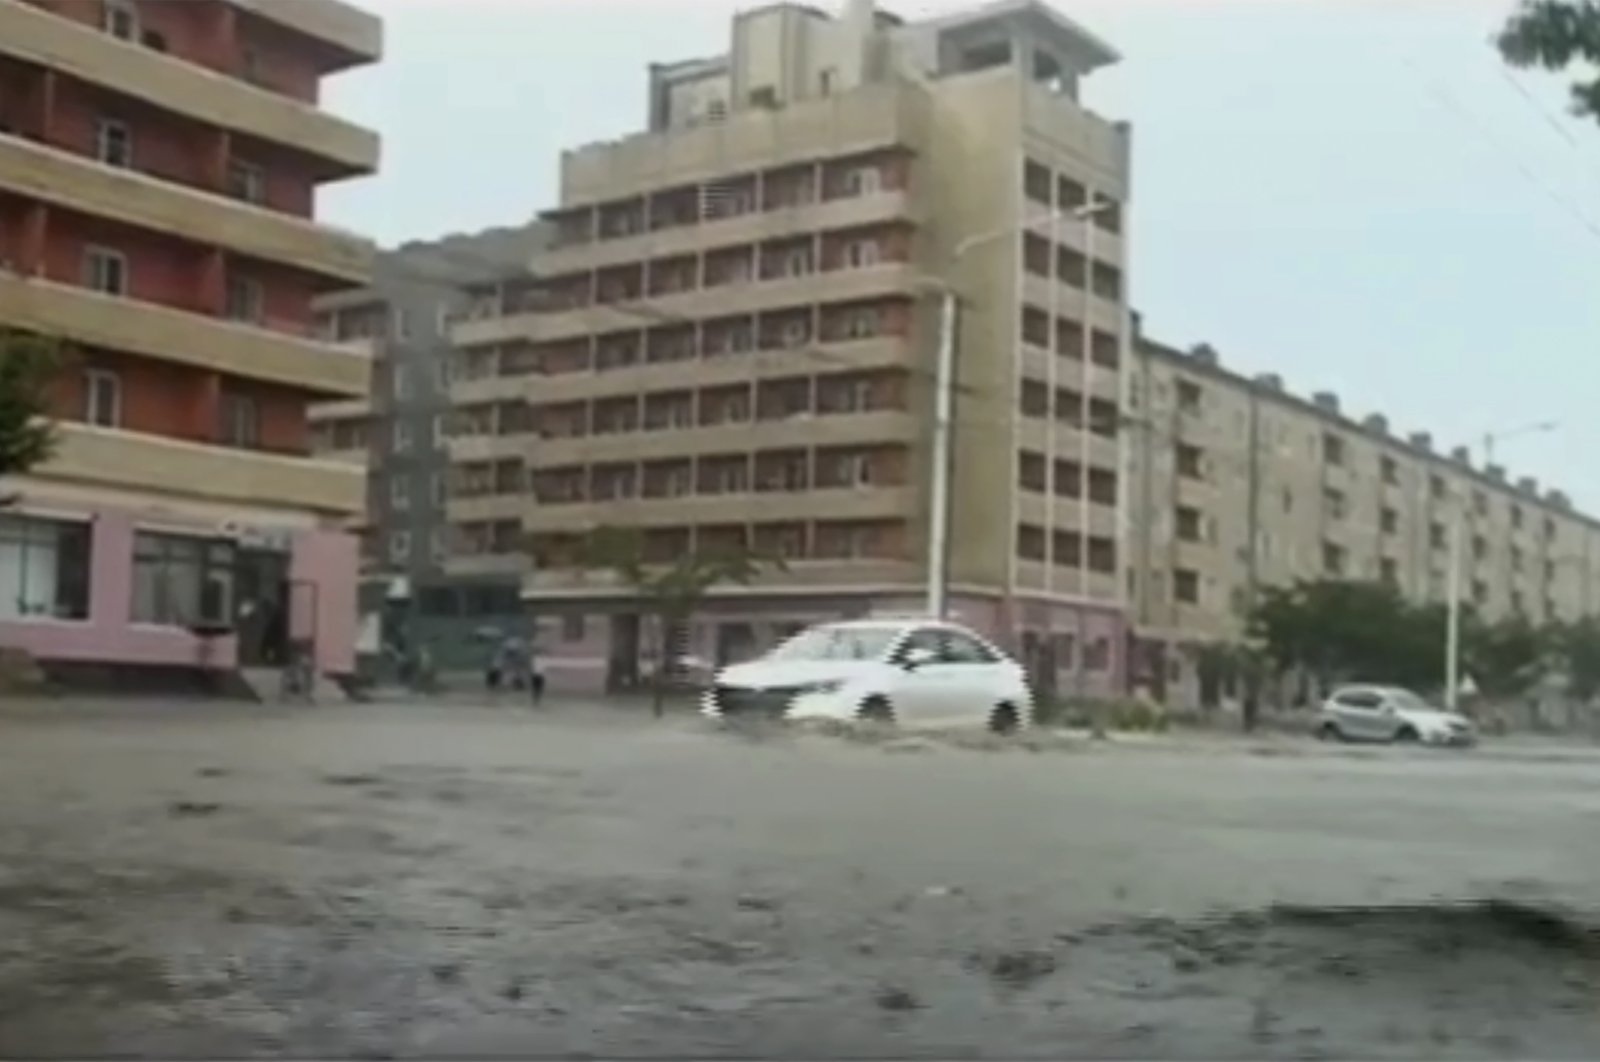 In this image taken from undated North Korean state broadcaster video, vehicles pass through flooded streets after heavy rains across South Hamgyong Province, North Korea. (AP Photo)